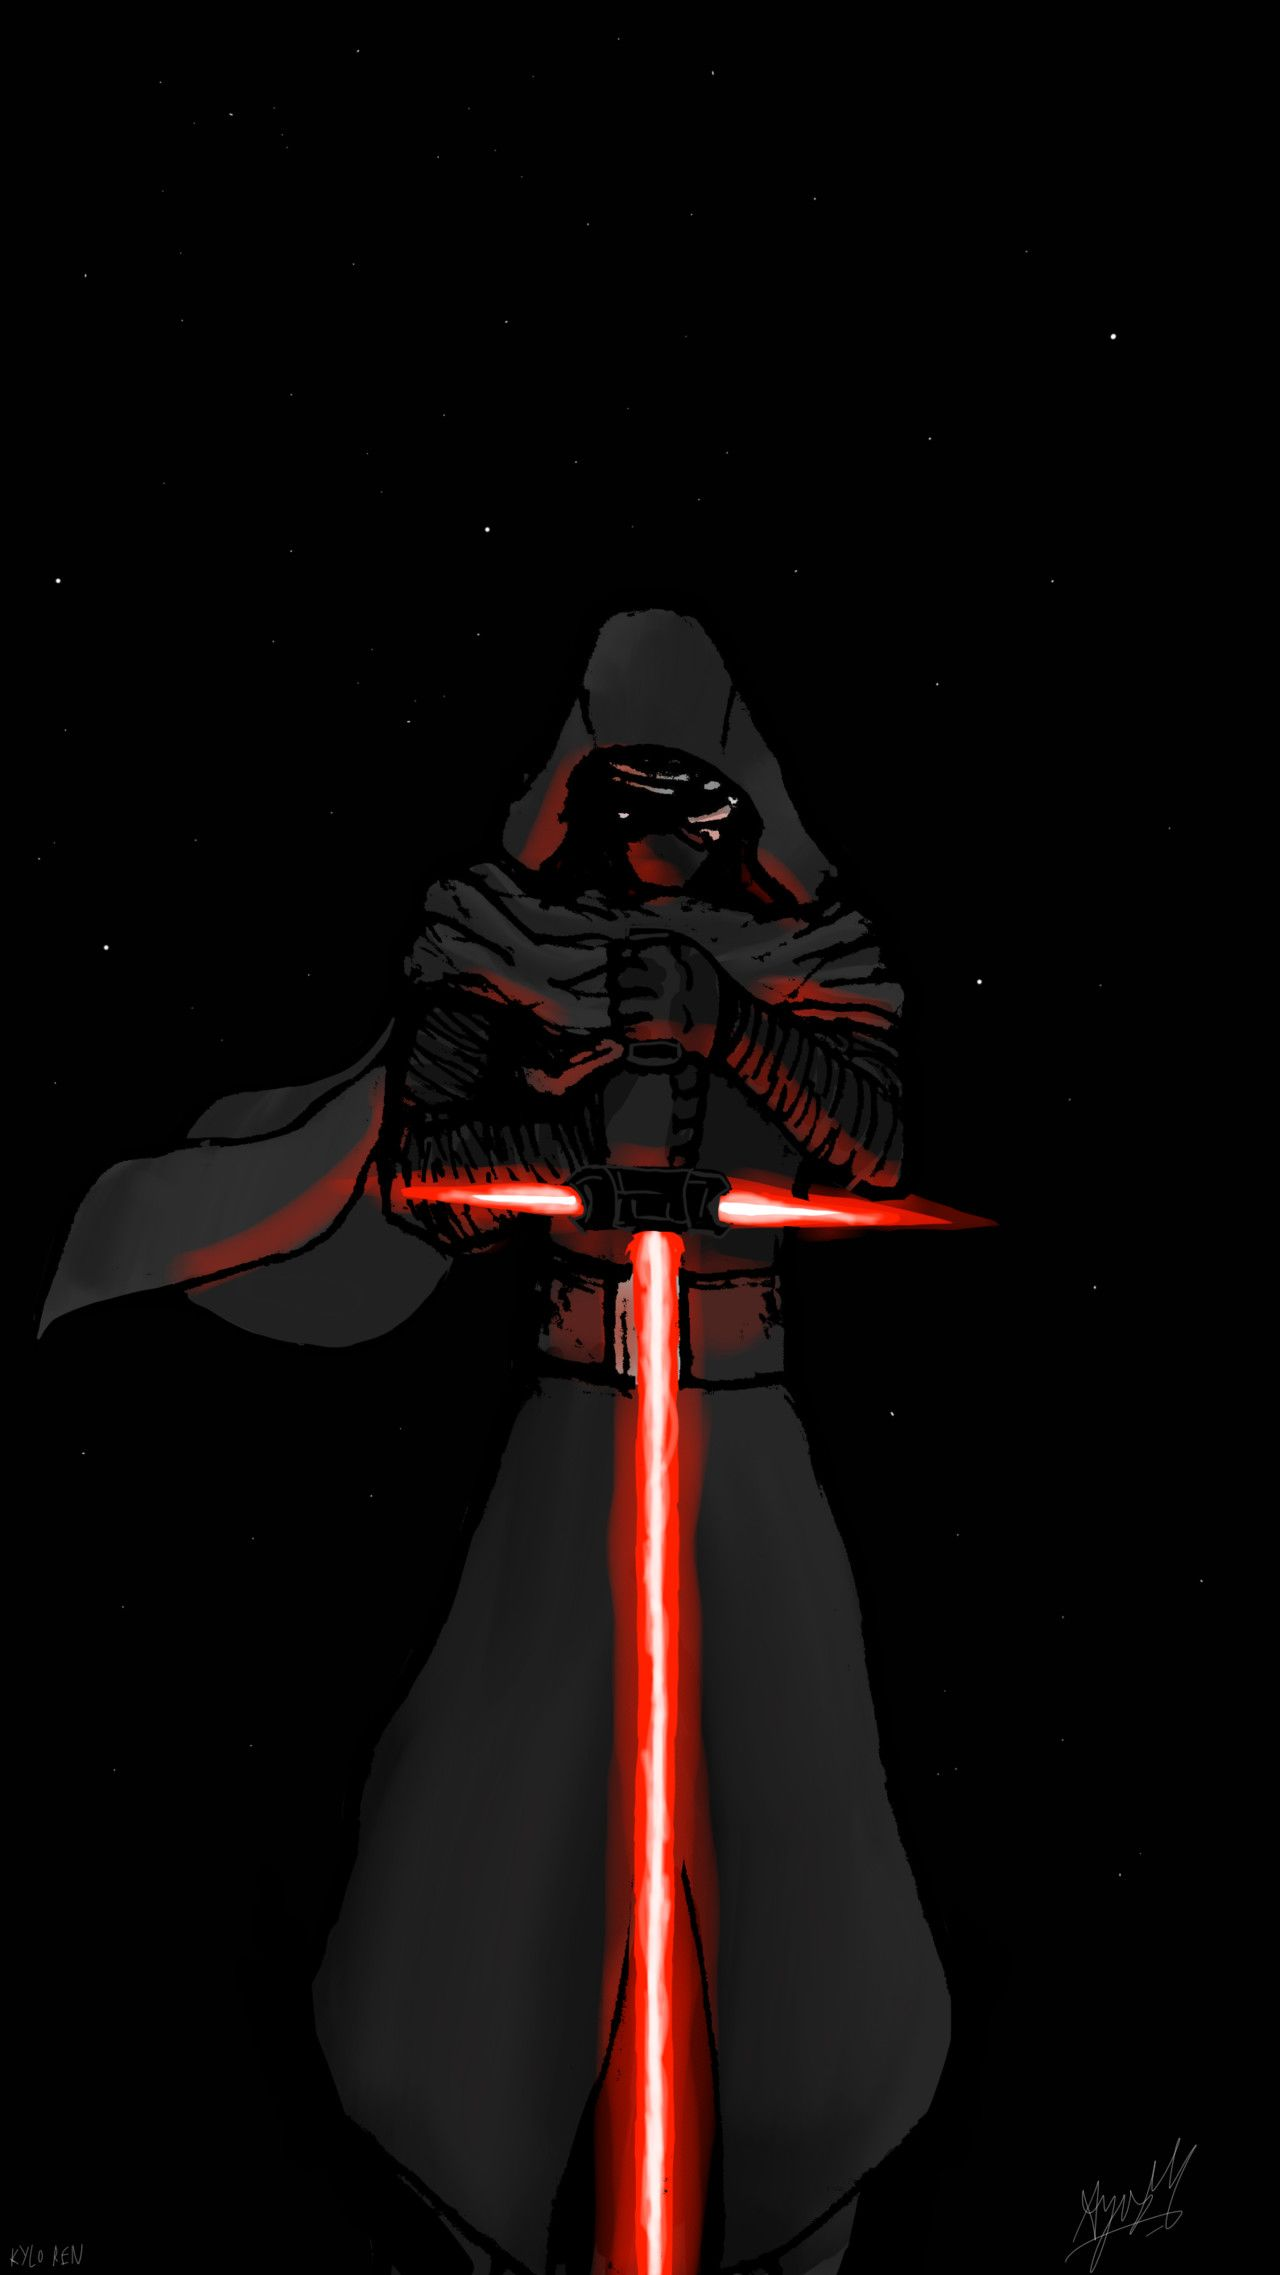 Star Wars Kylo Ren Wallpapers Wallpaper Cave